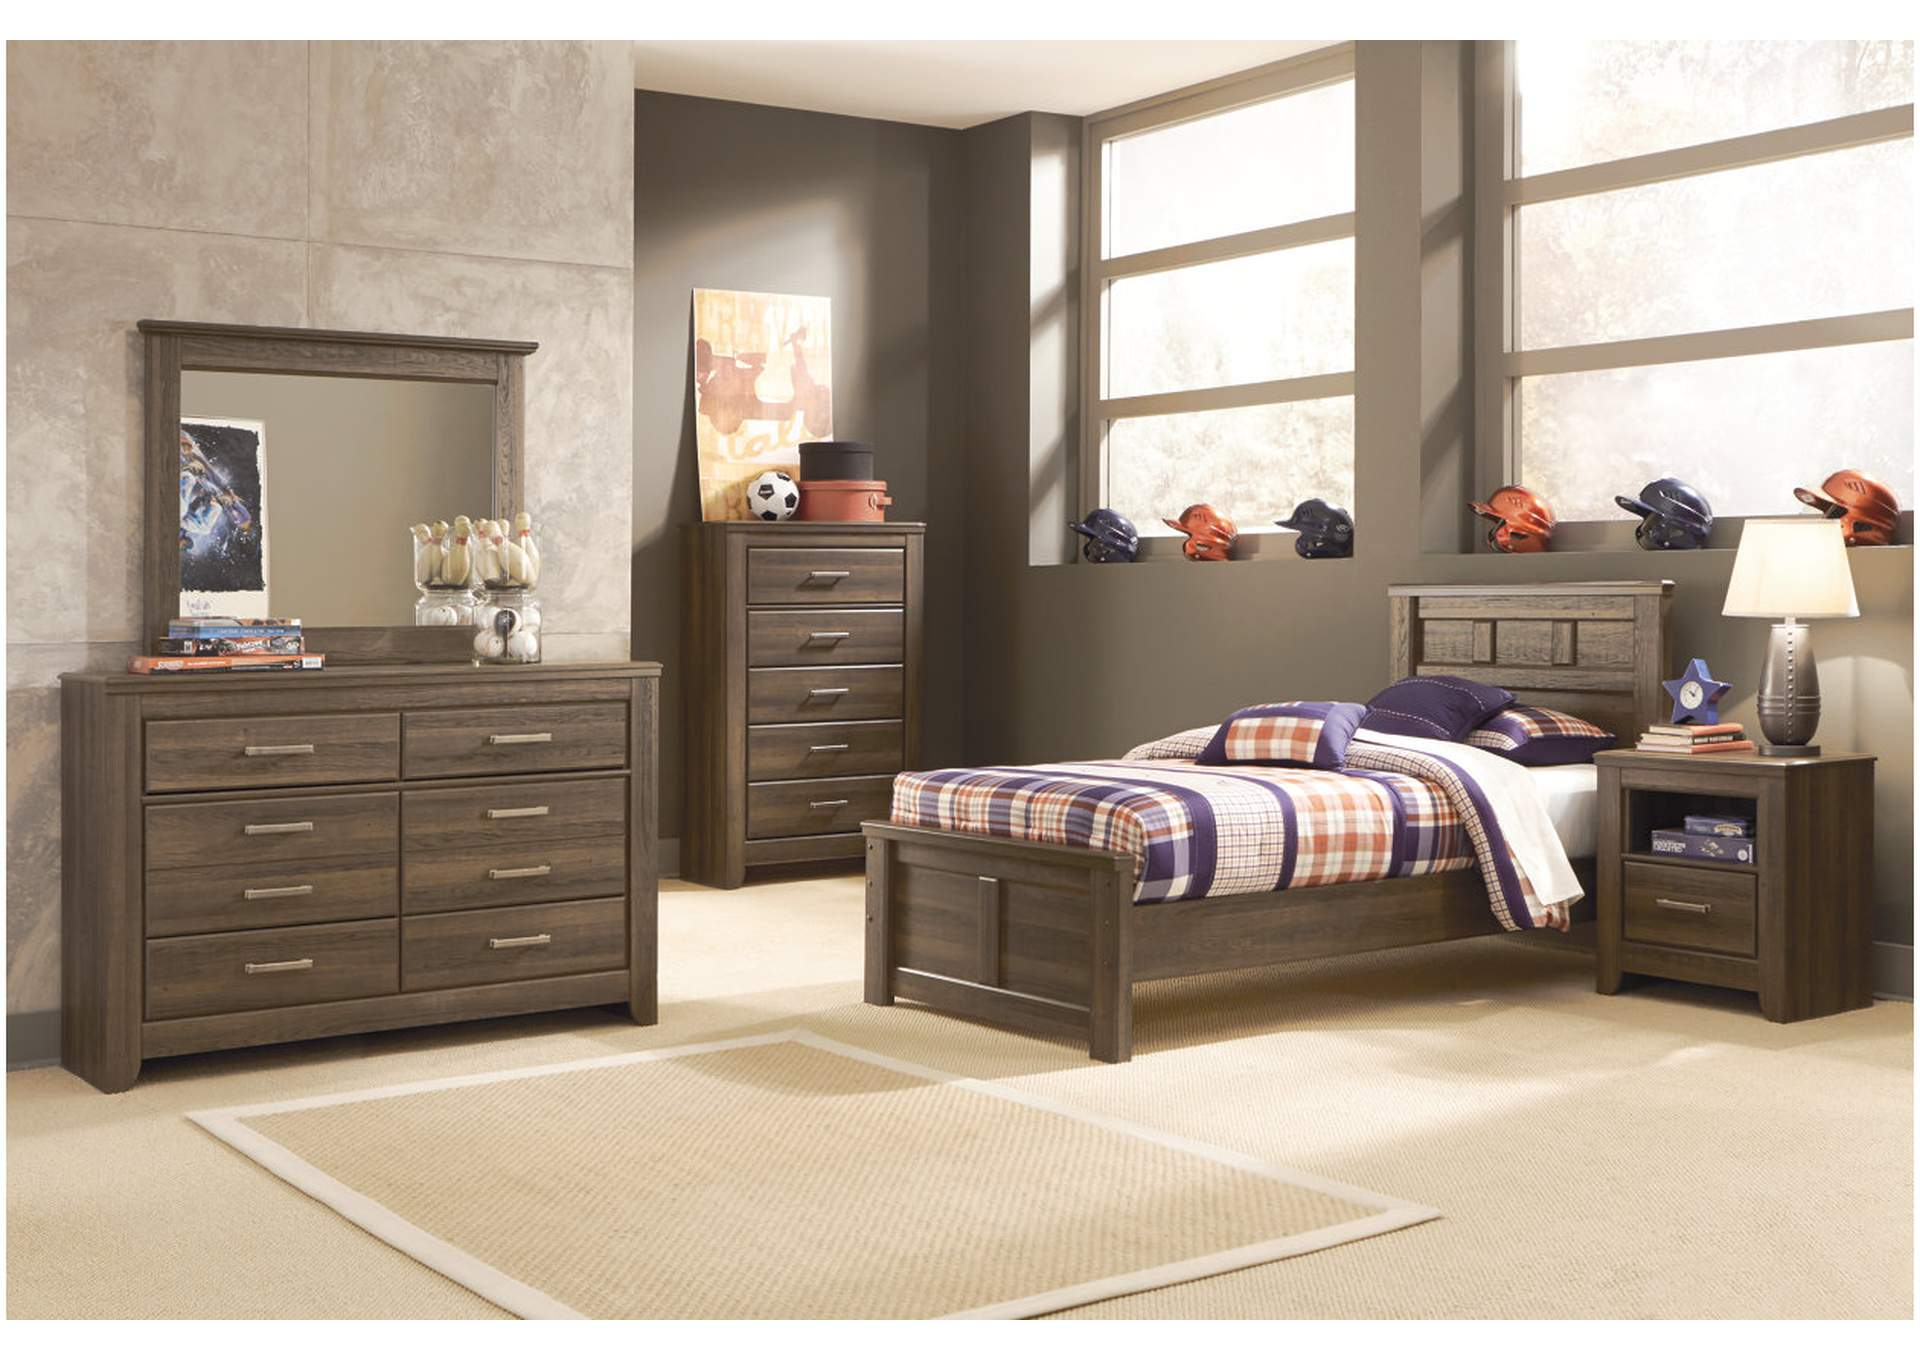 Juararo Twin Panel Bed w/Dresser & Mirror,Signature Design By Ashley